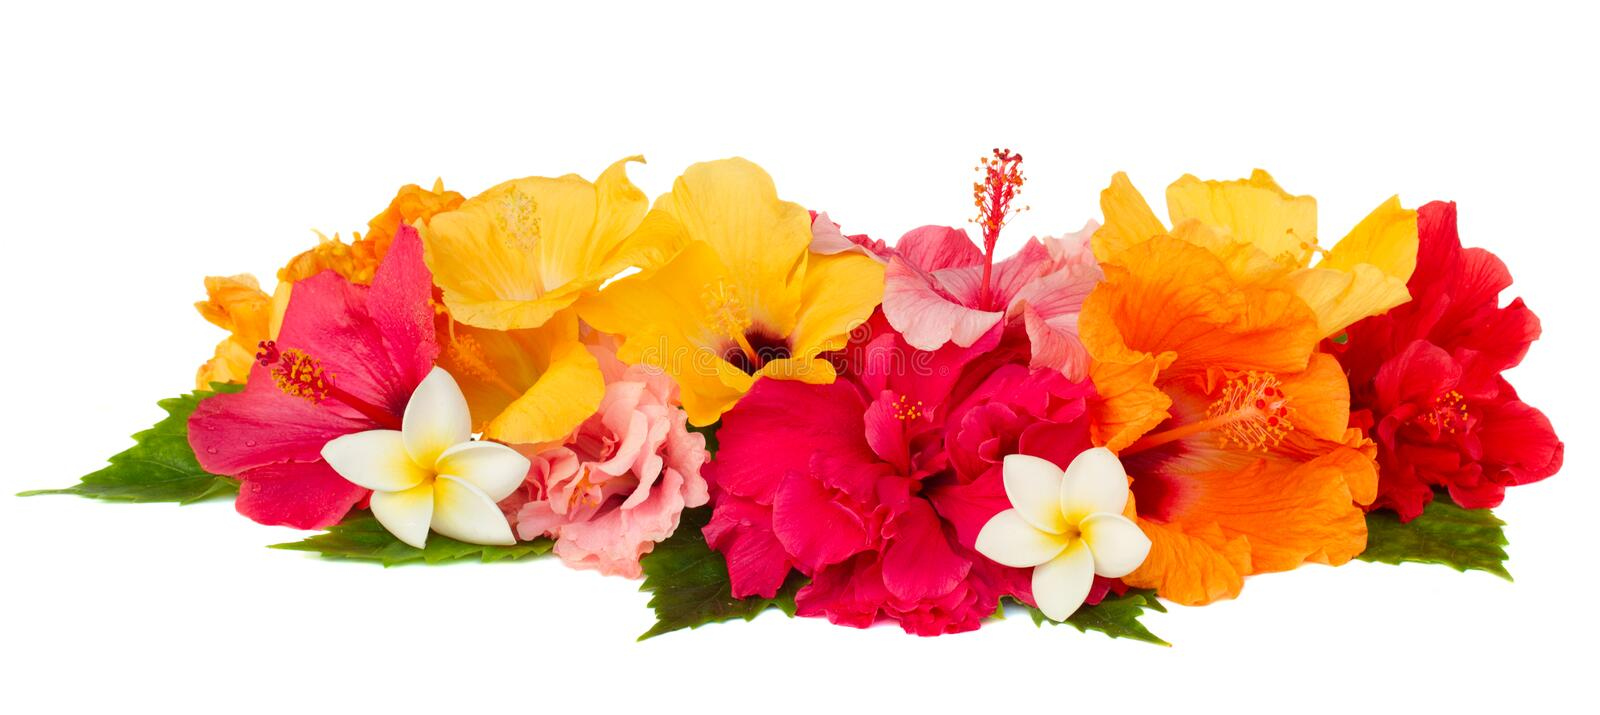 Border of colorful hibiscus flowers royalty free stock images